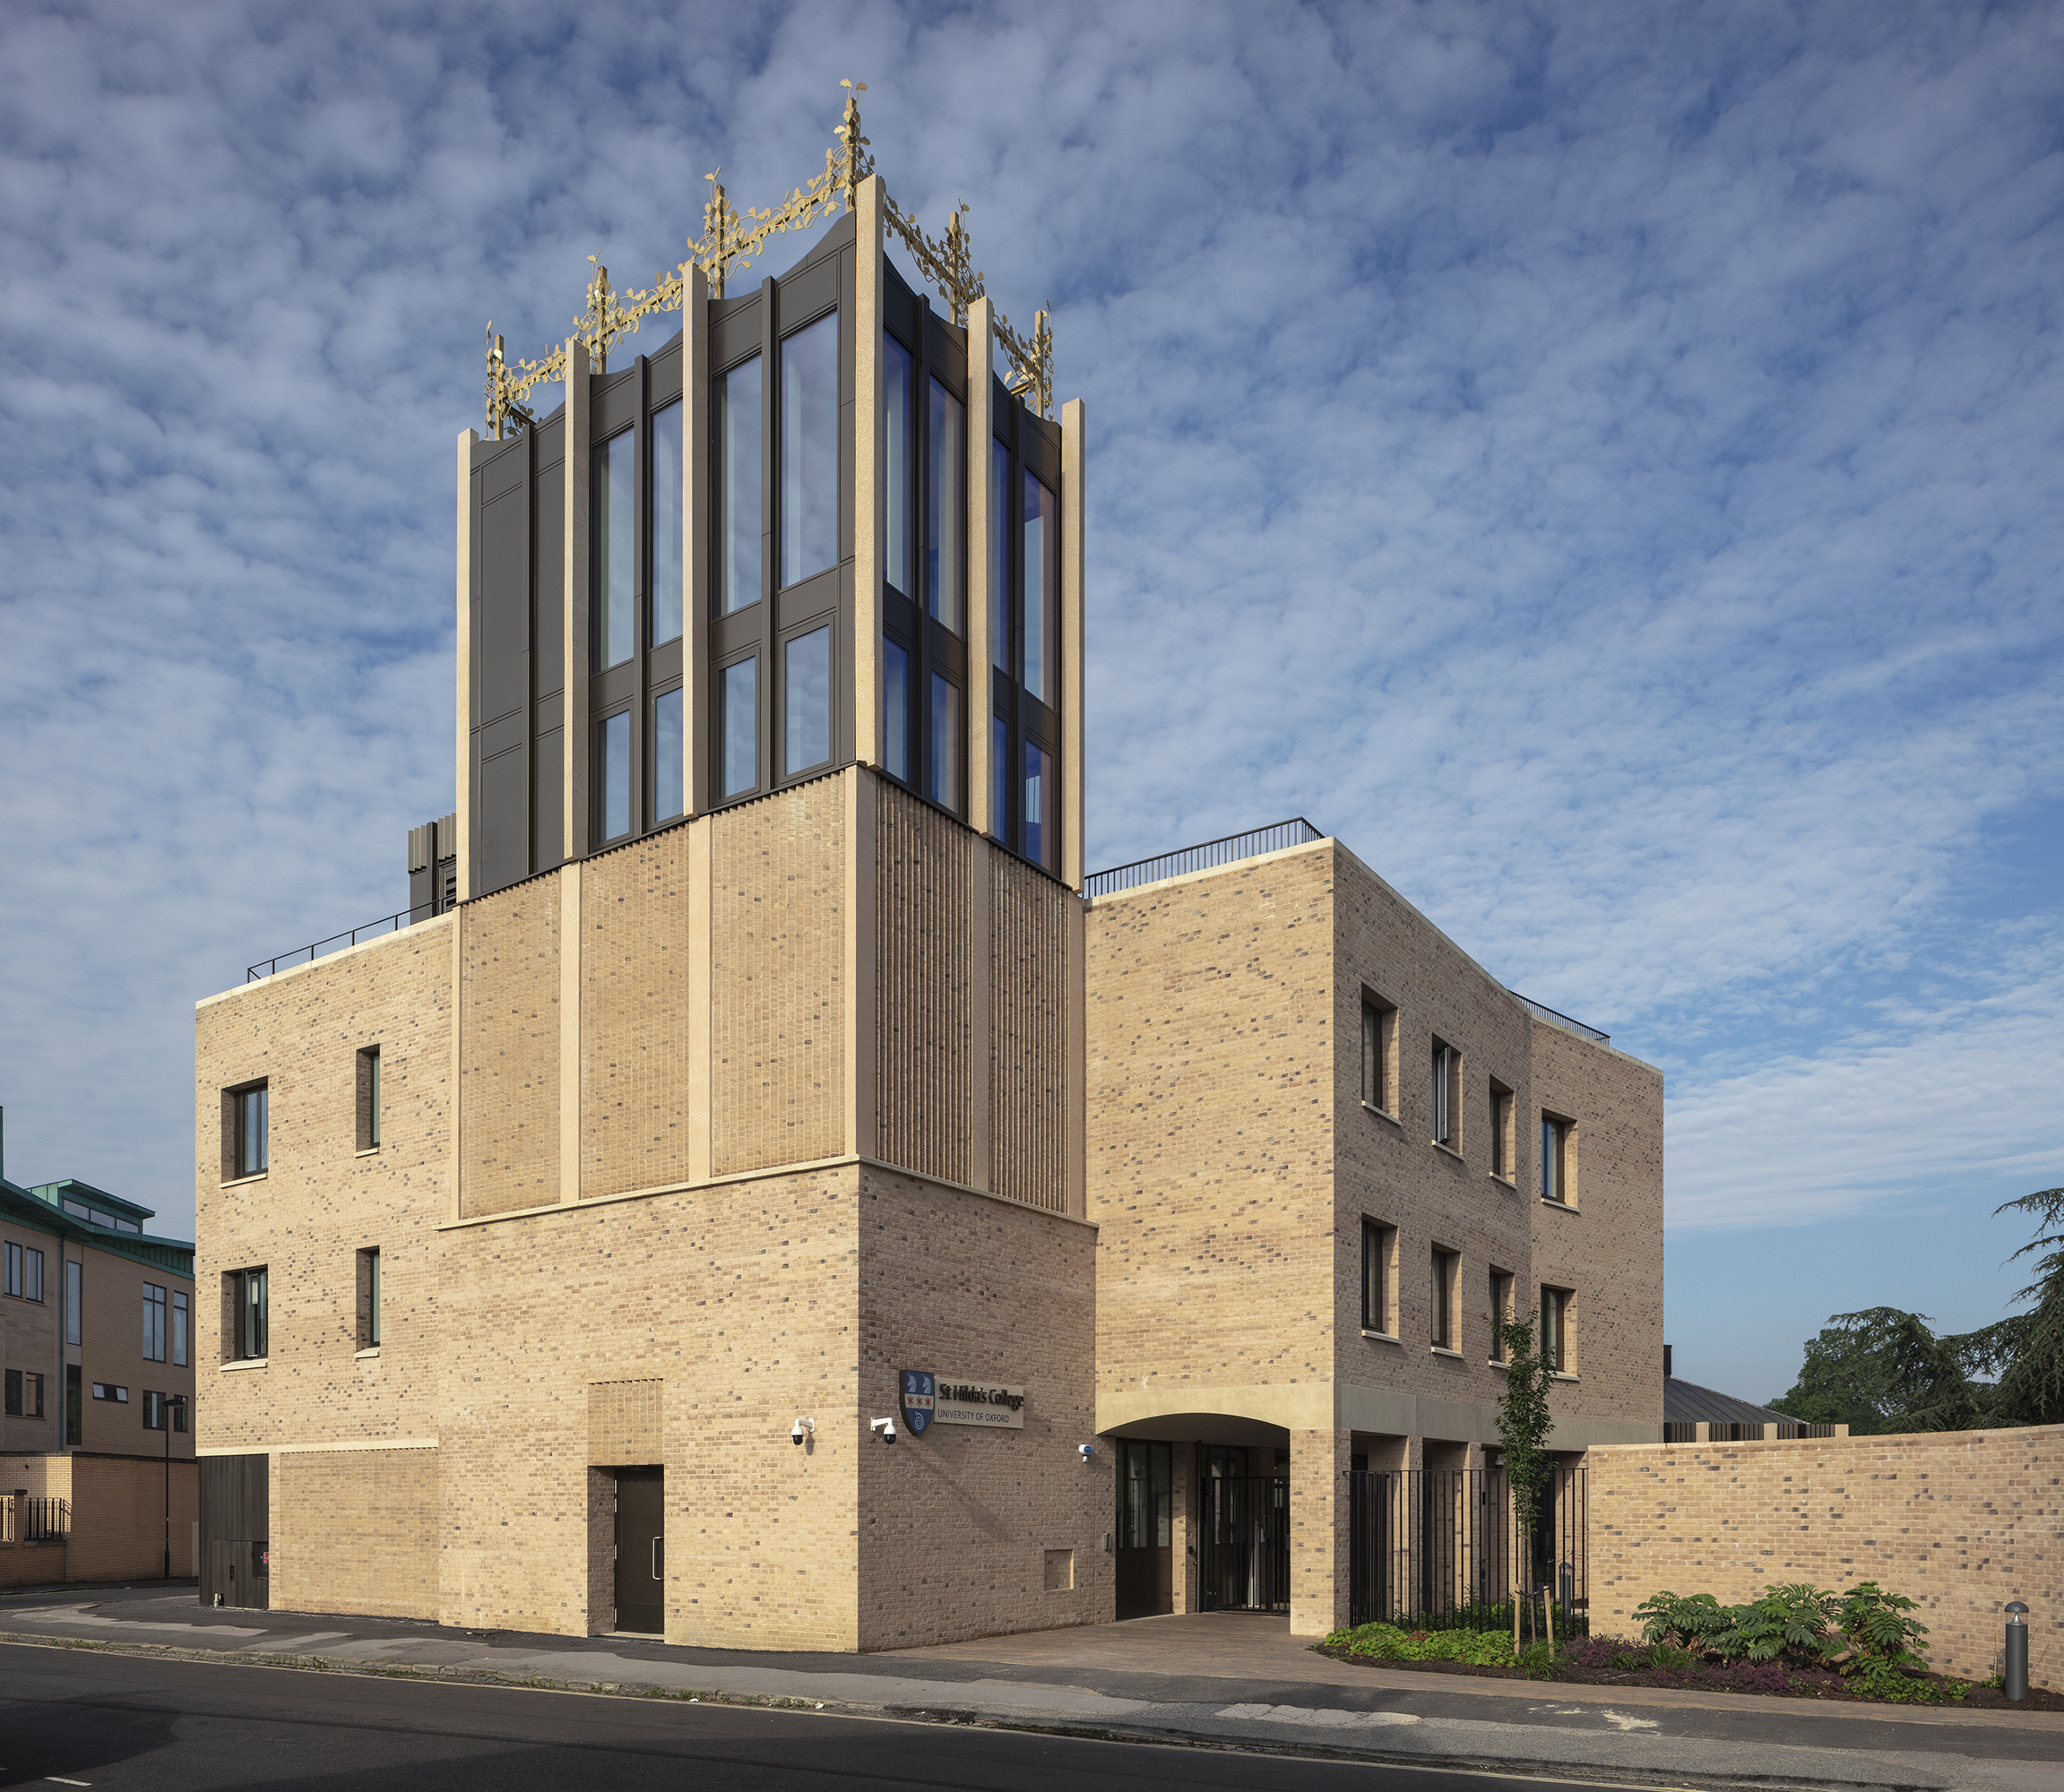 Beard completes work on £20m redevelopment project at St Hilda's College, Oxford